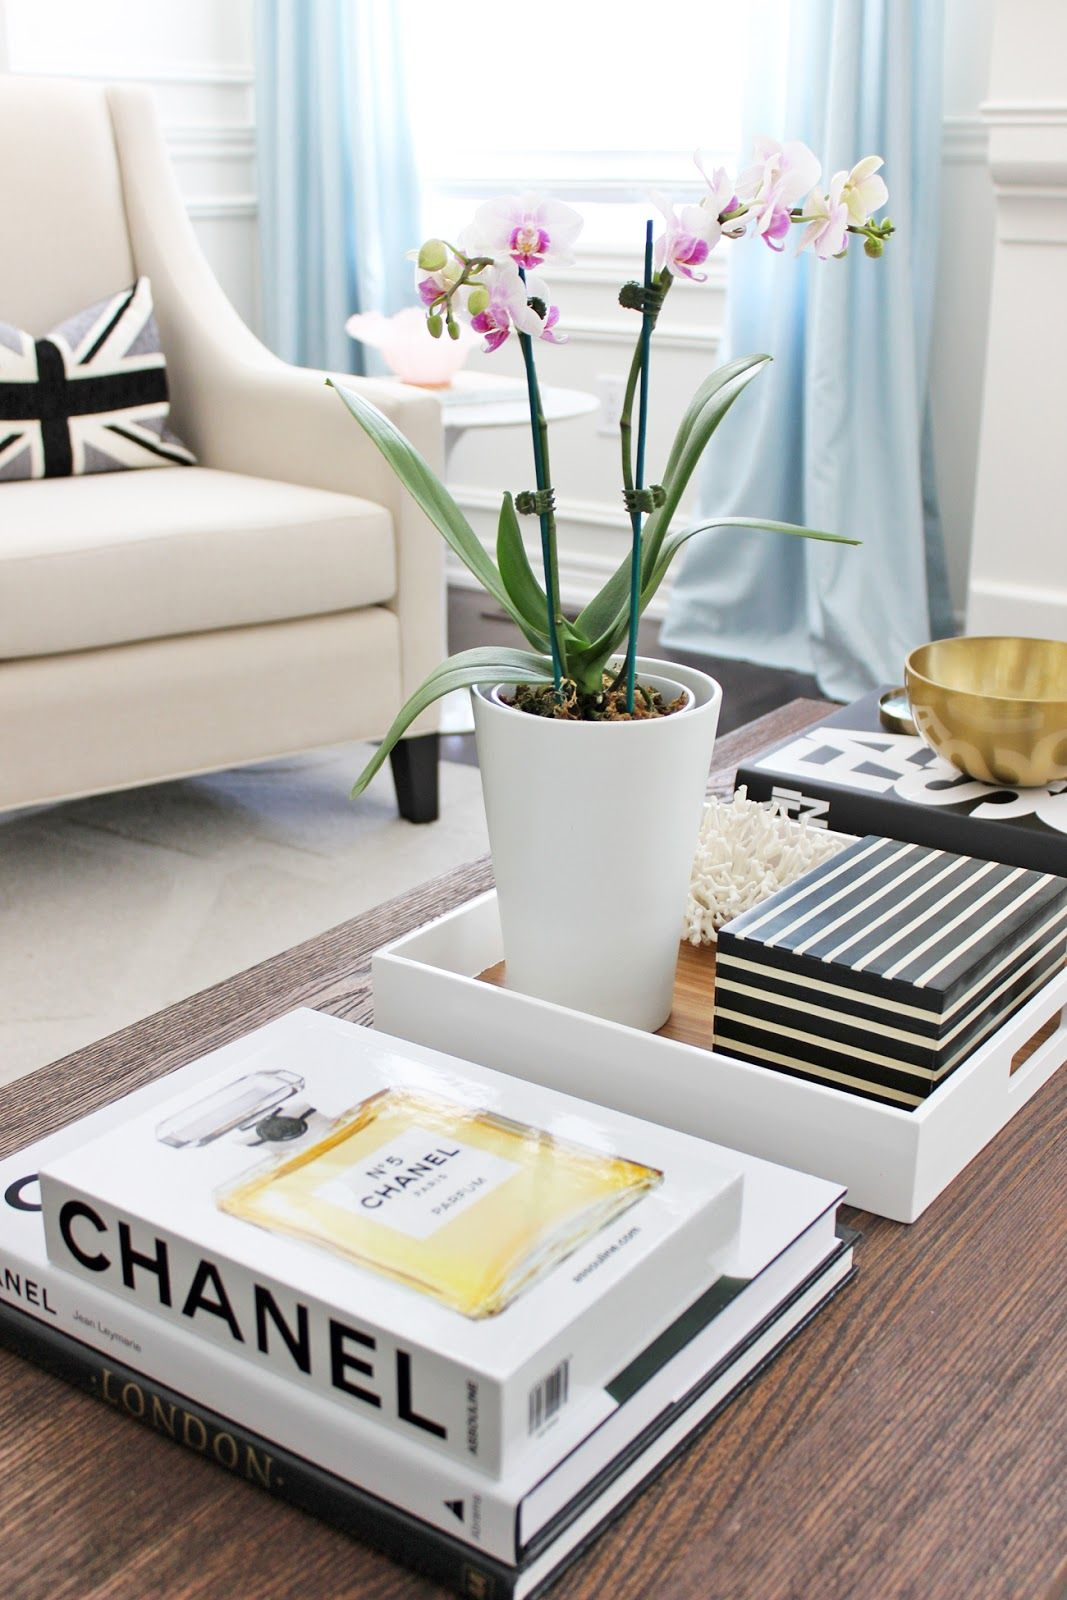 Phalaenopsis Orchid Chanel Coffee Table Books Wohnzimmertische